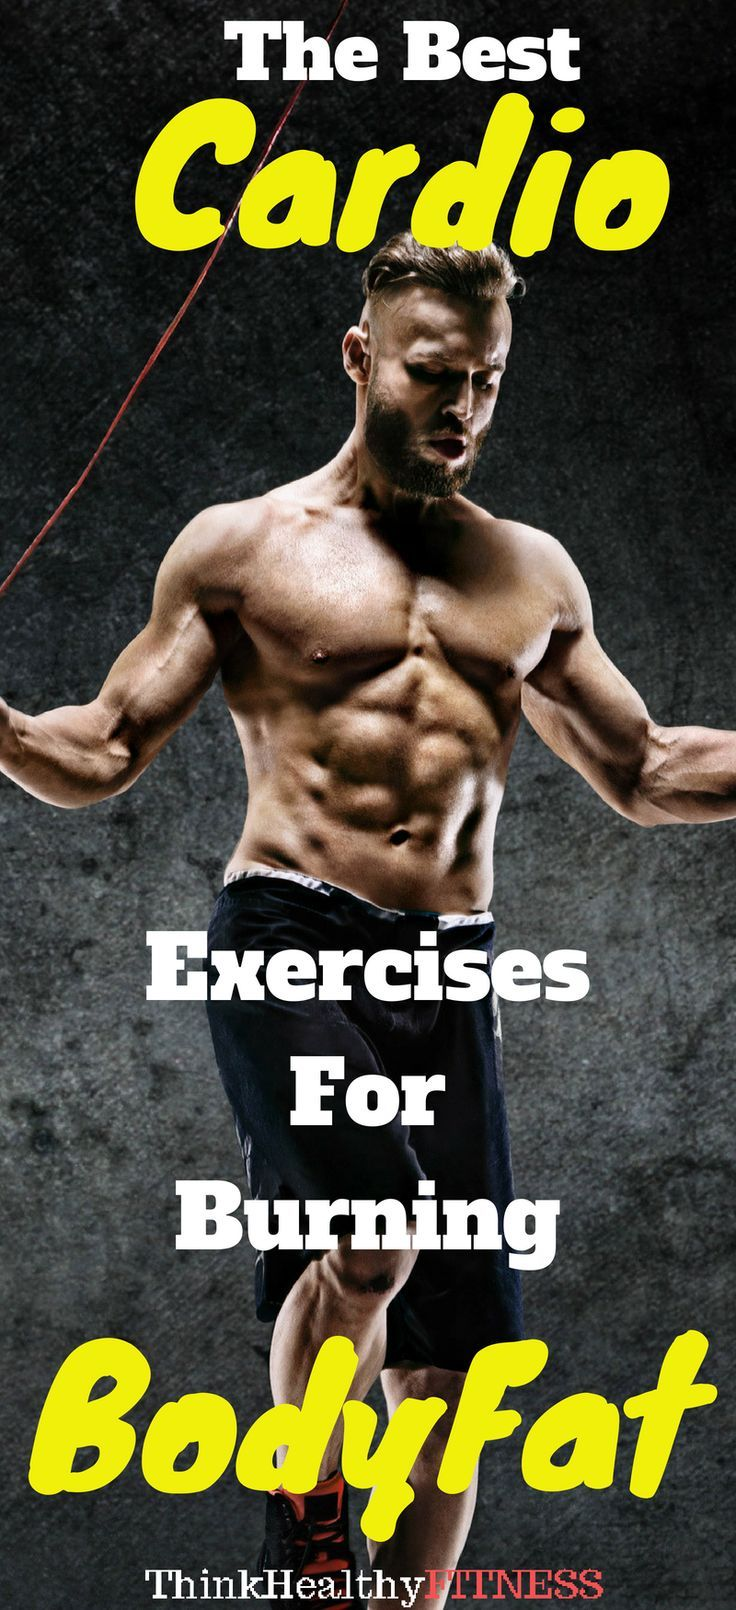 Best cardio exercise to burn fat and build muscle